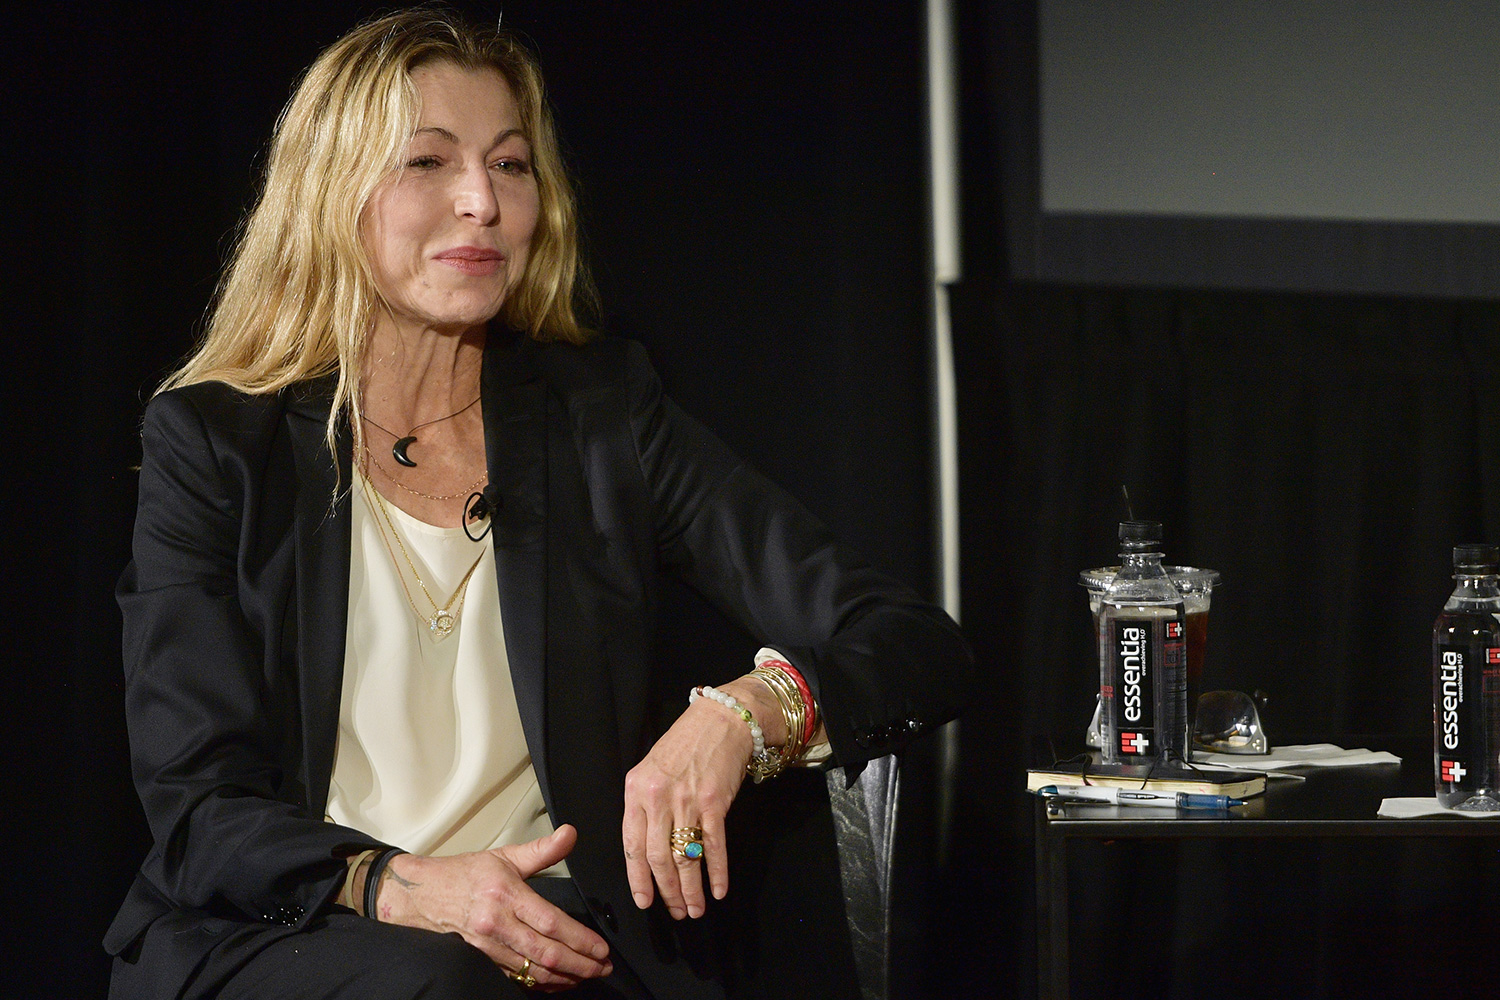 Tatum O'Neal attends the 'Chloe Grace Moretz in conversation with TK' during Vulture Festival presented by AT&T at Hollywood Roosevelt Hotel on November 17, 2018 in Hollywood